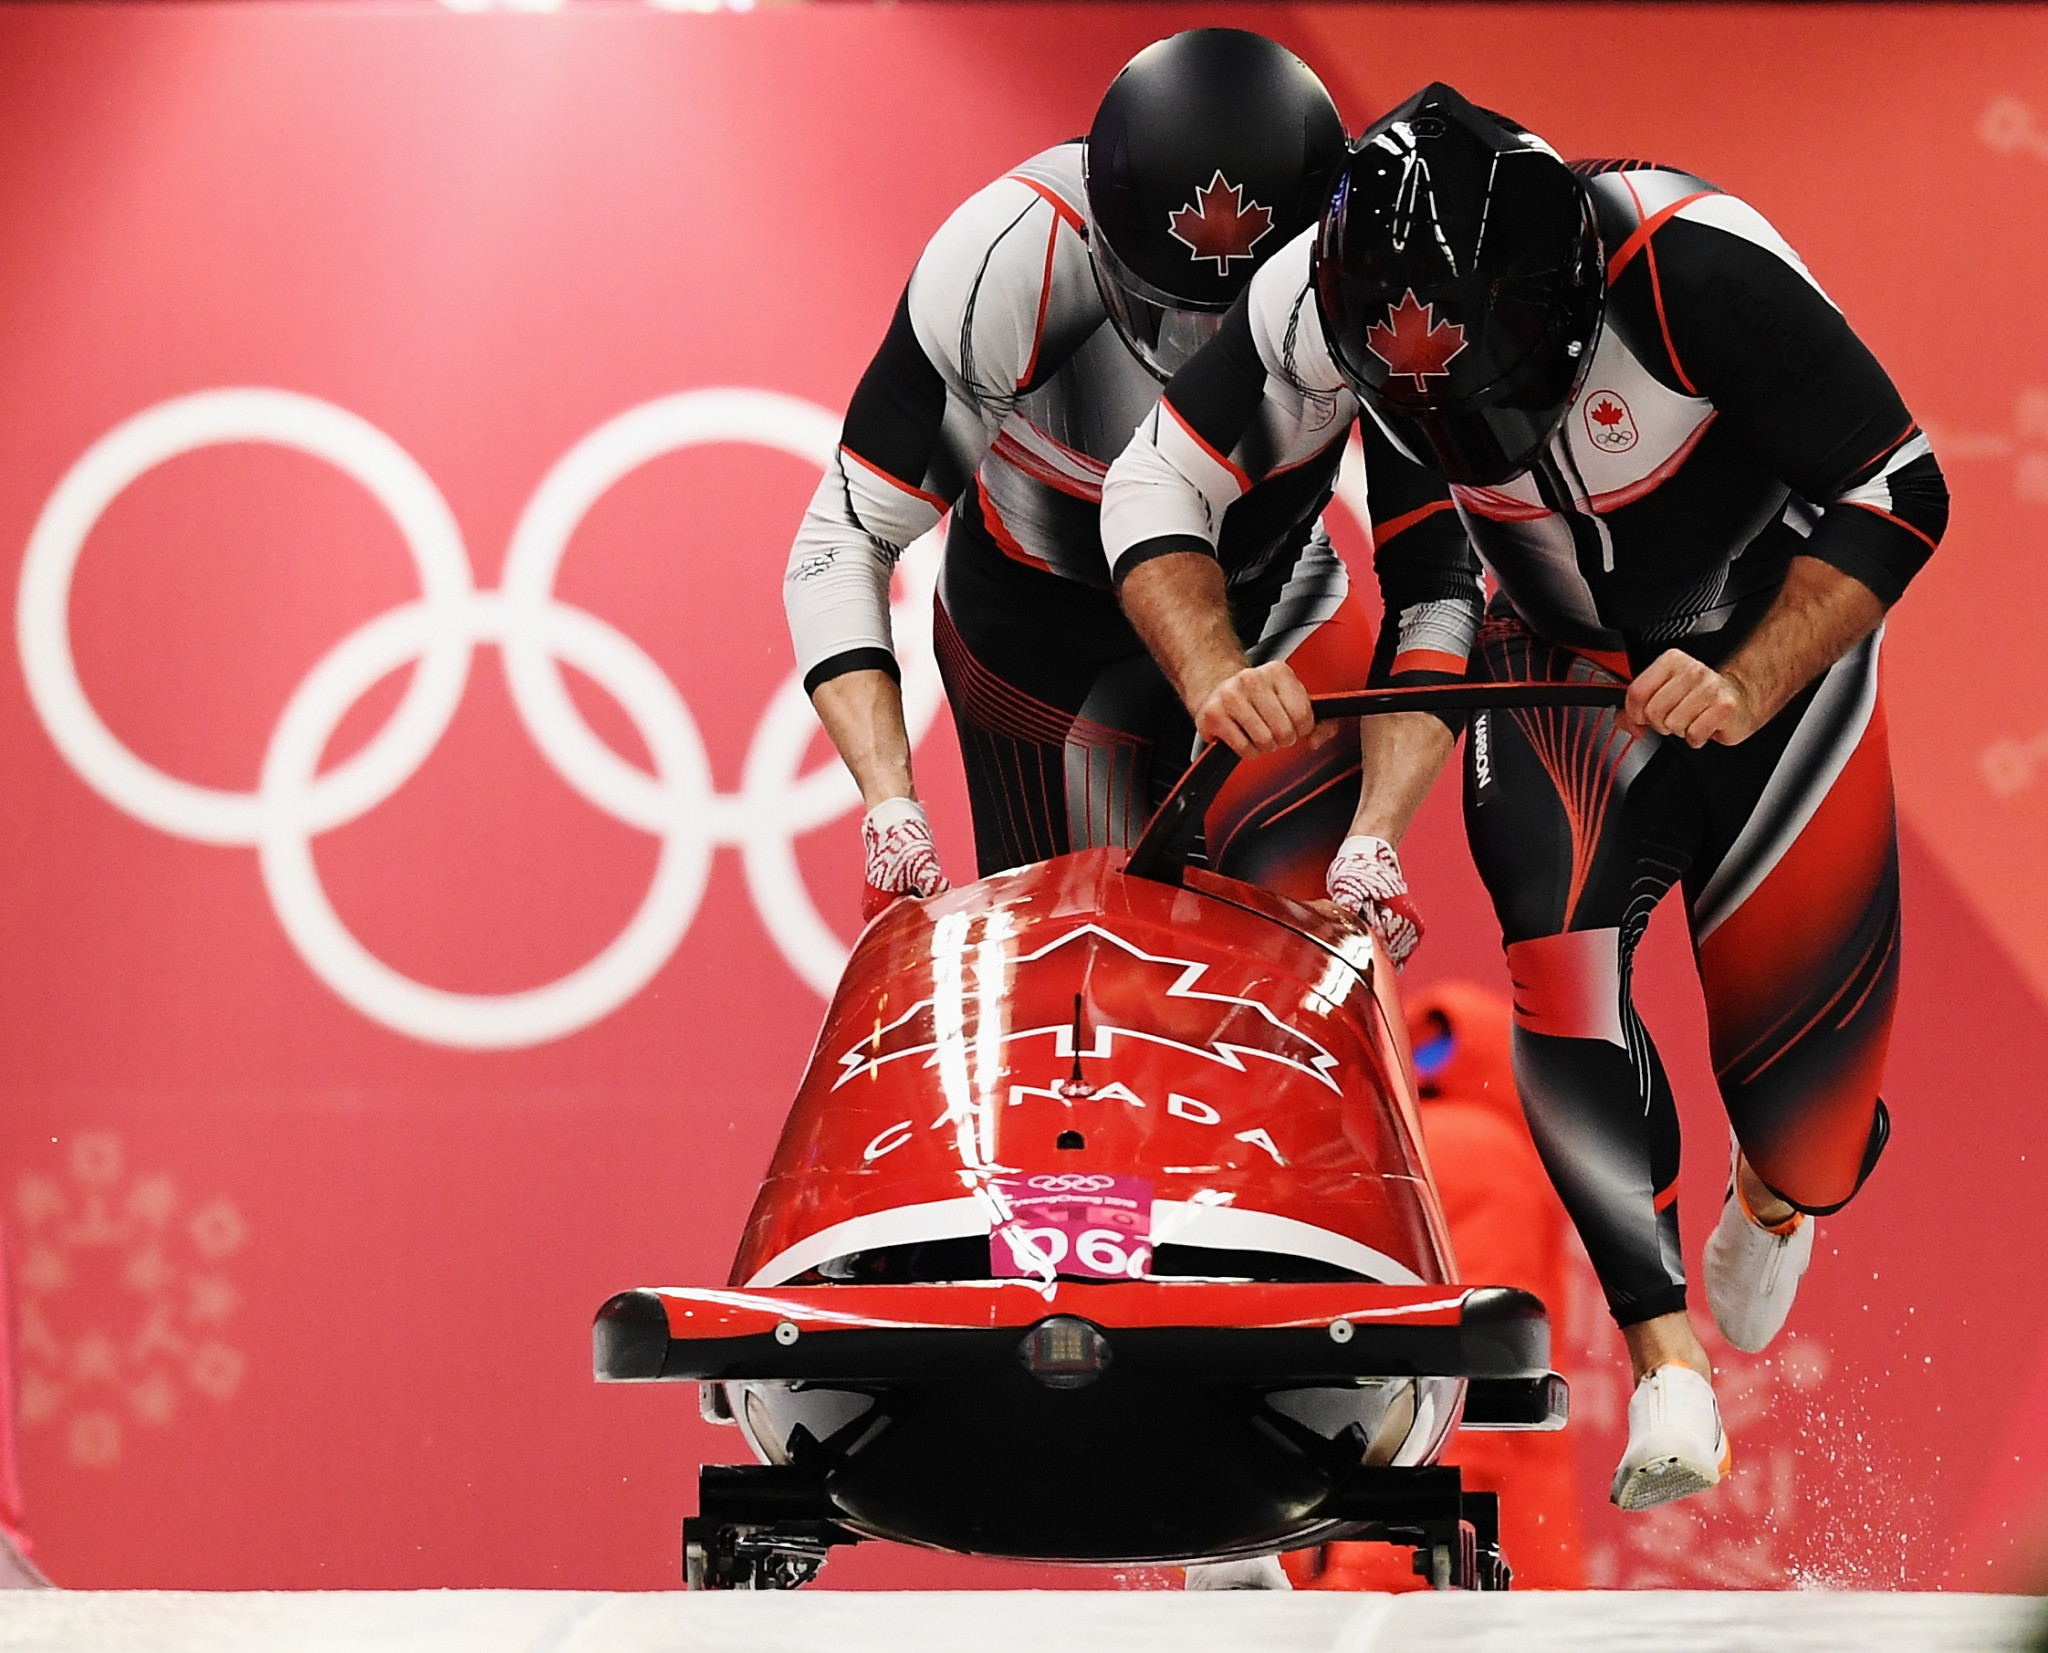 The Canadian duo recorded the same time as their German rivals to share the gold medal ©Getty Images